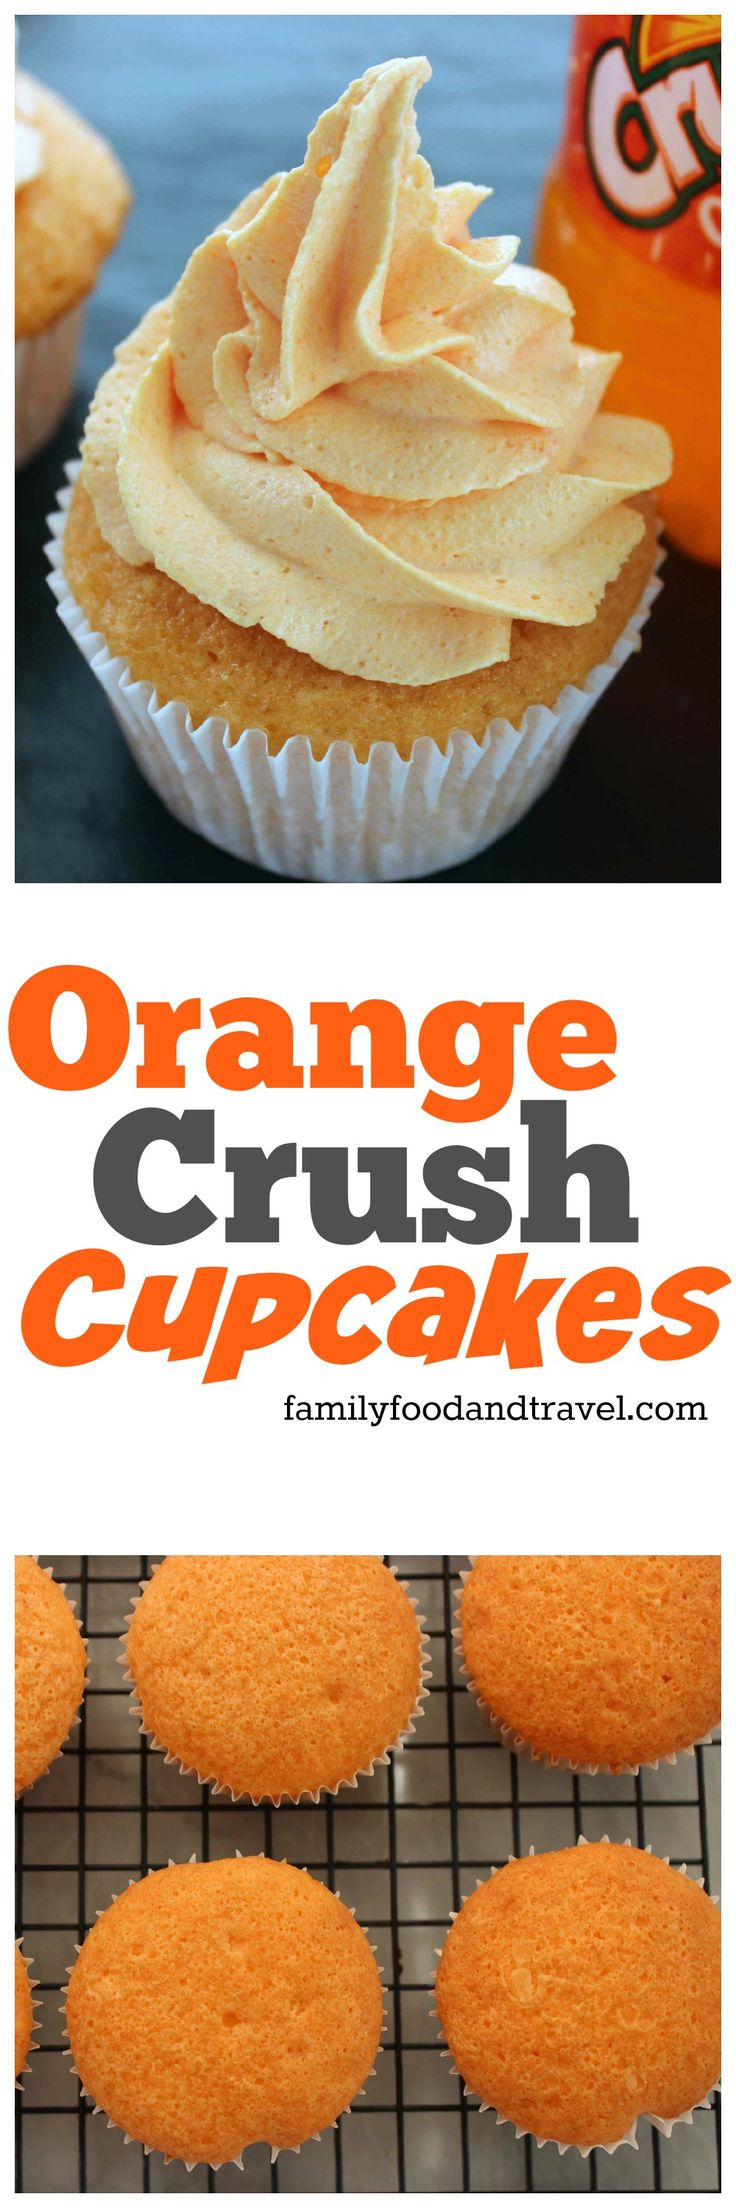 Orange Crush Cupcakes - a delicious alternative to a traditional flavour everyone will enjoy. Made with cake mix, orange crush and orange gelatin.